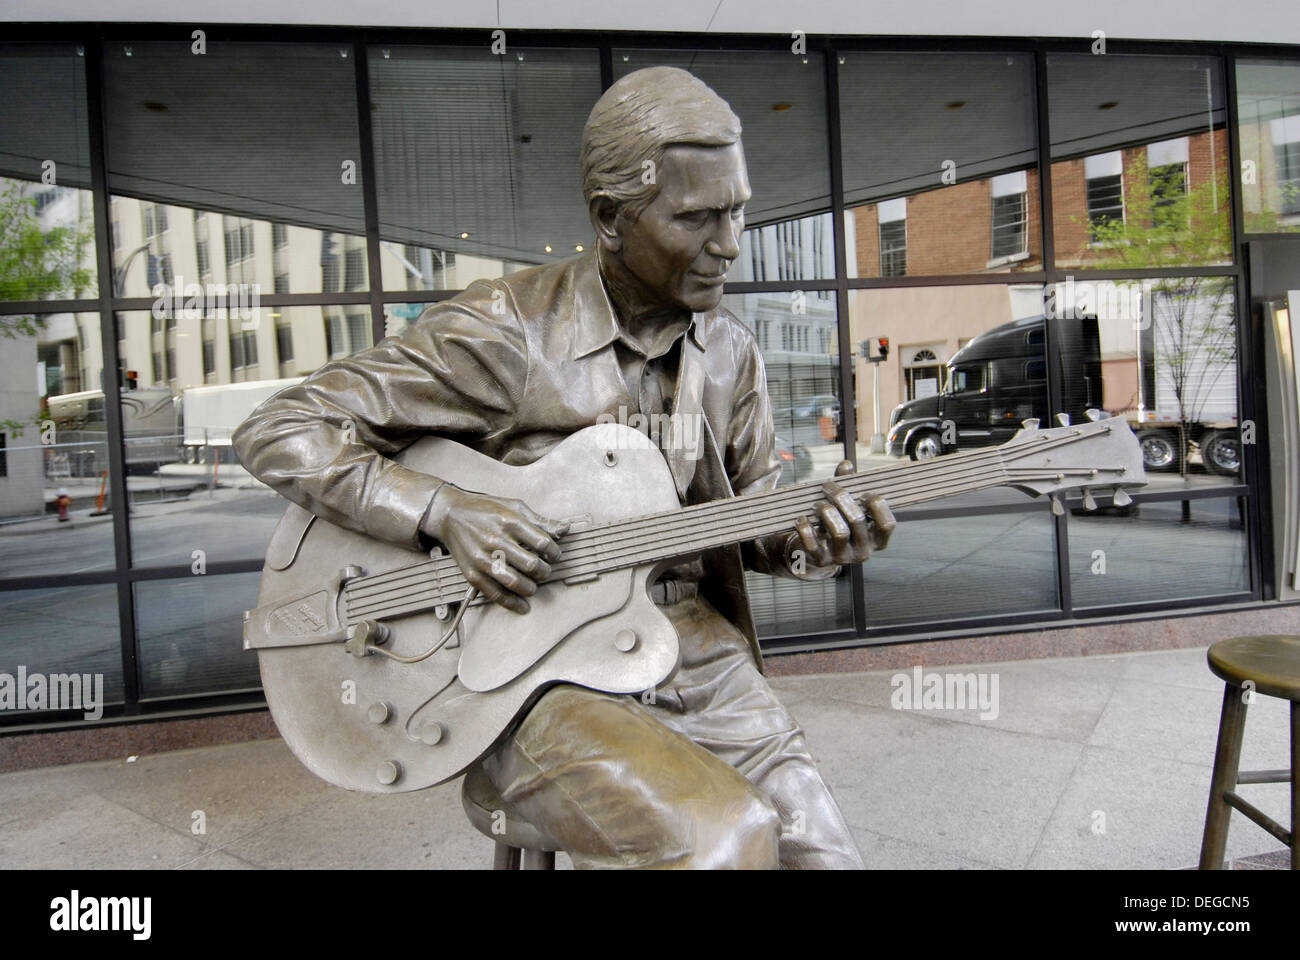 Statue of Chet Atkins Country Music Legend in front of Bank of America building Nashville. Tennessee. USA. - Stock Image